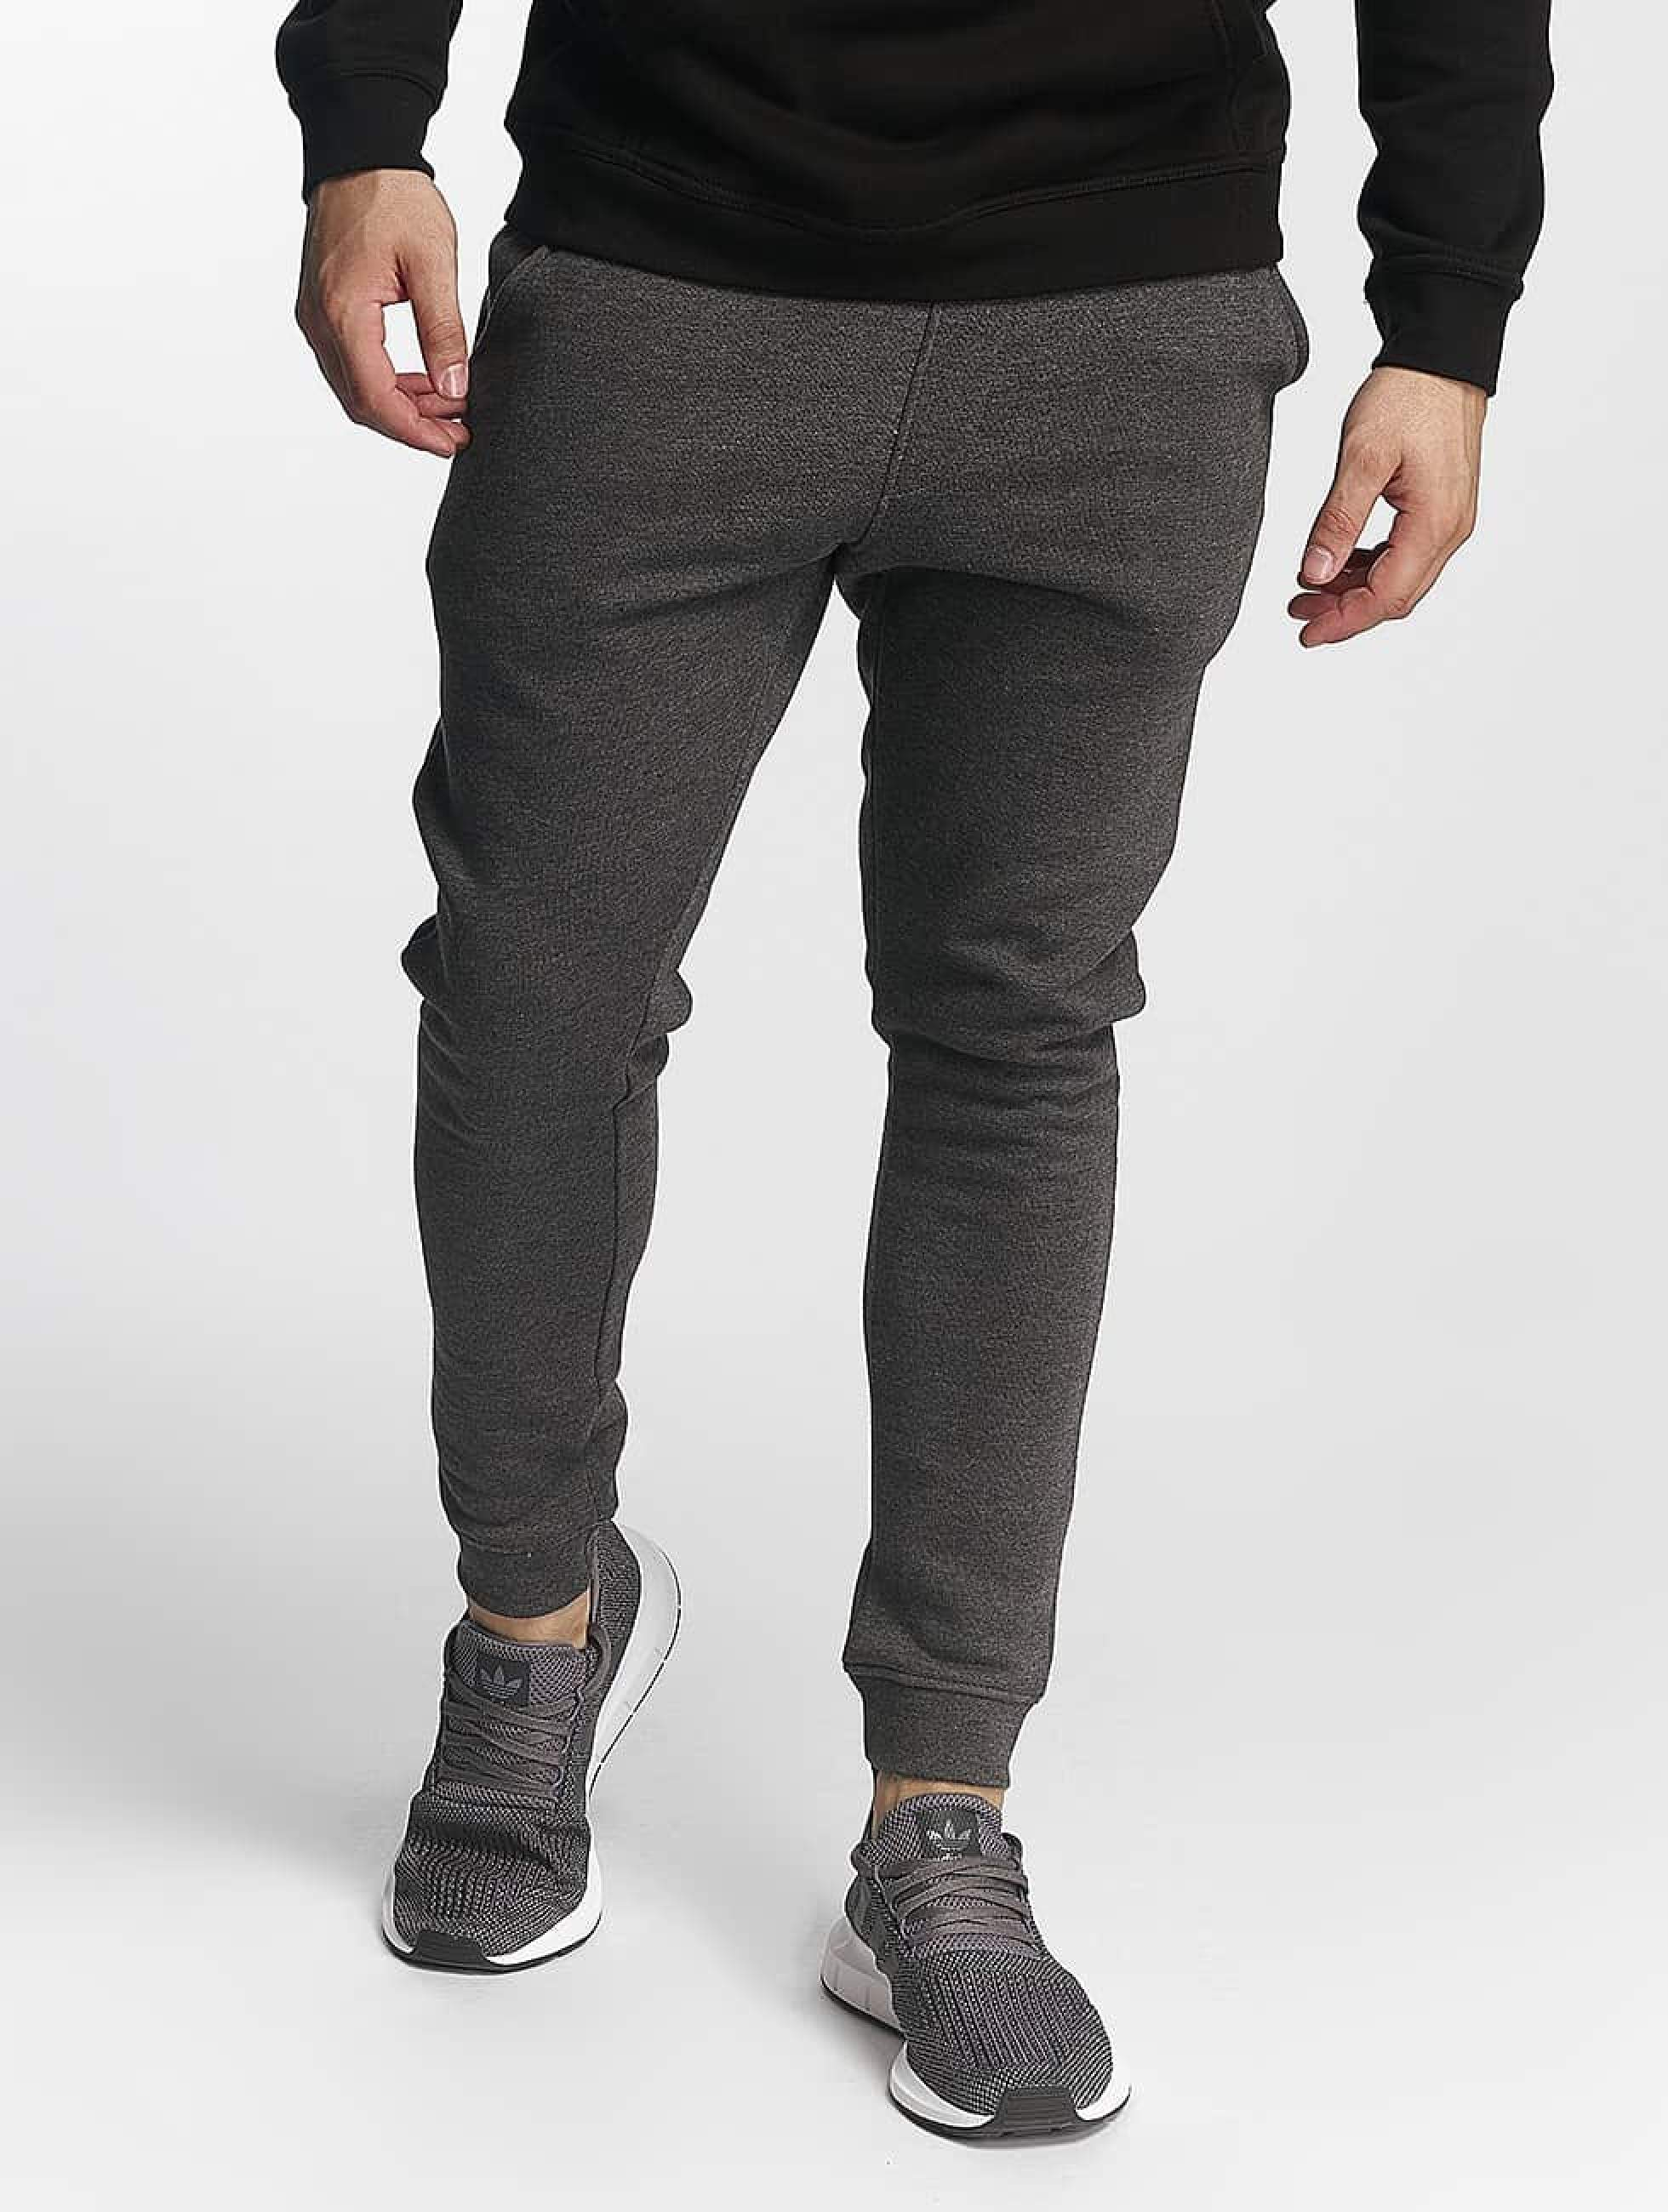 Cyprime / Sweat Pant Lithium in grey 3XL